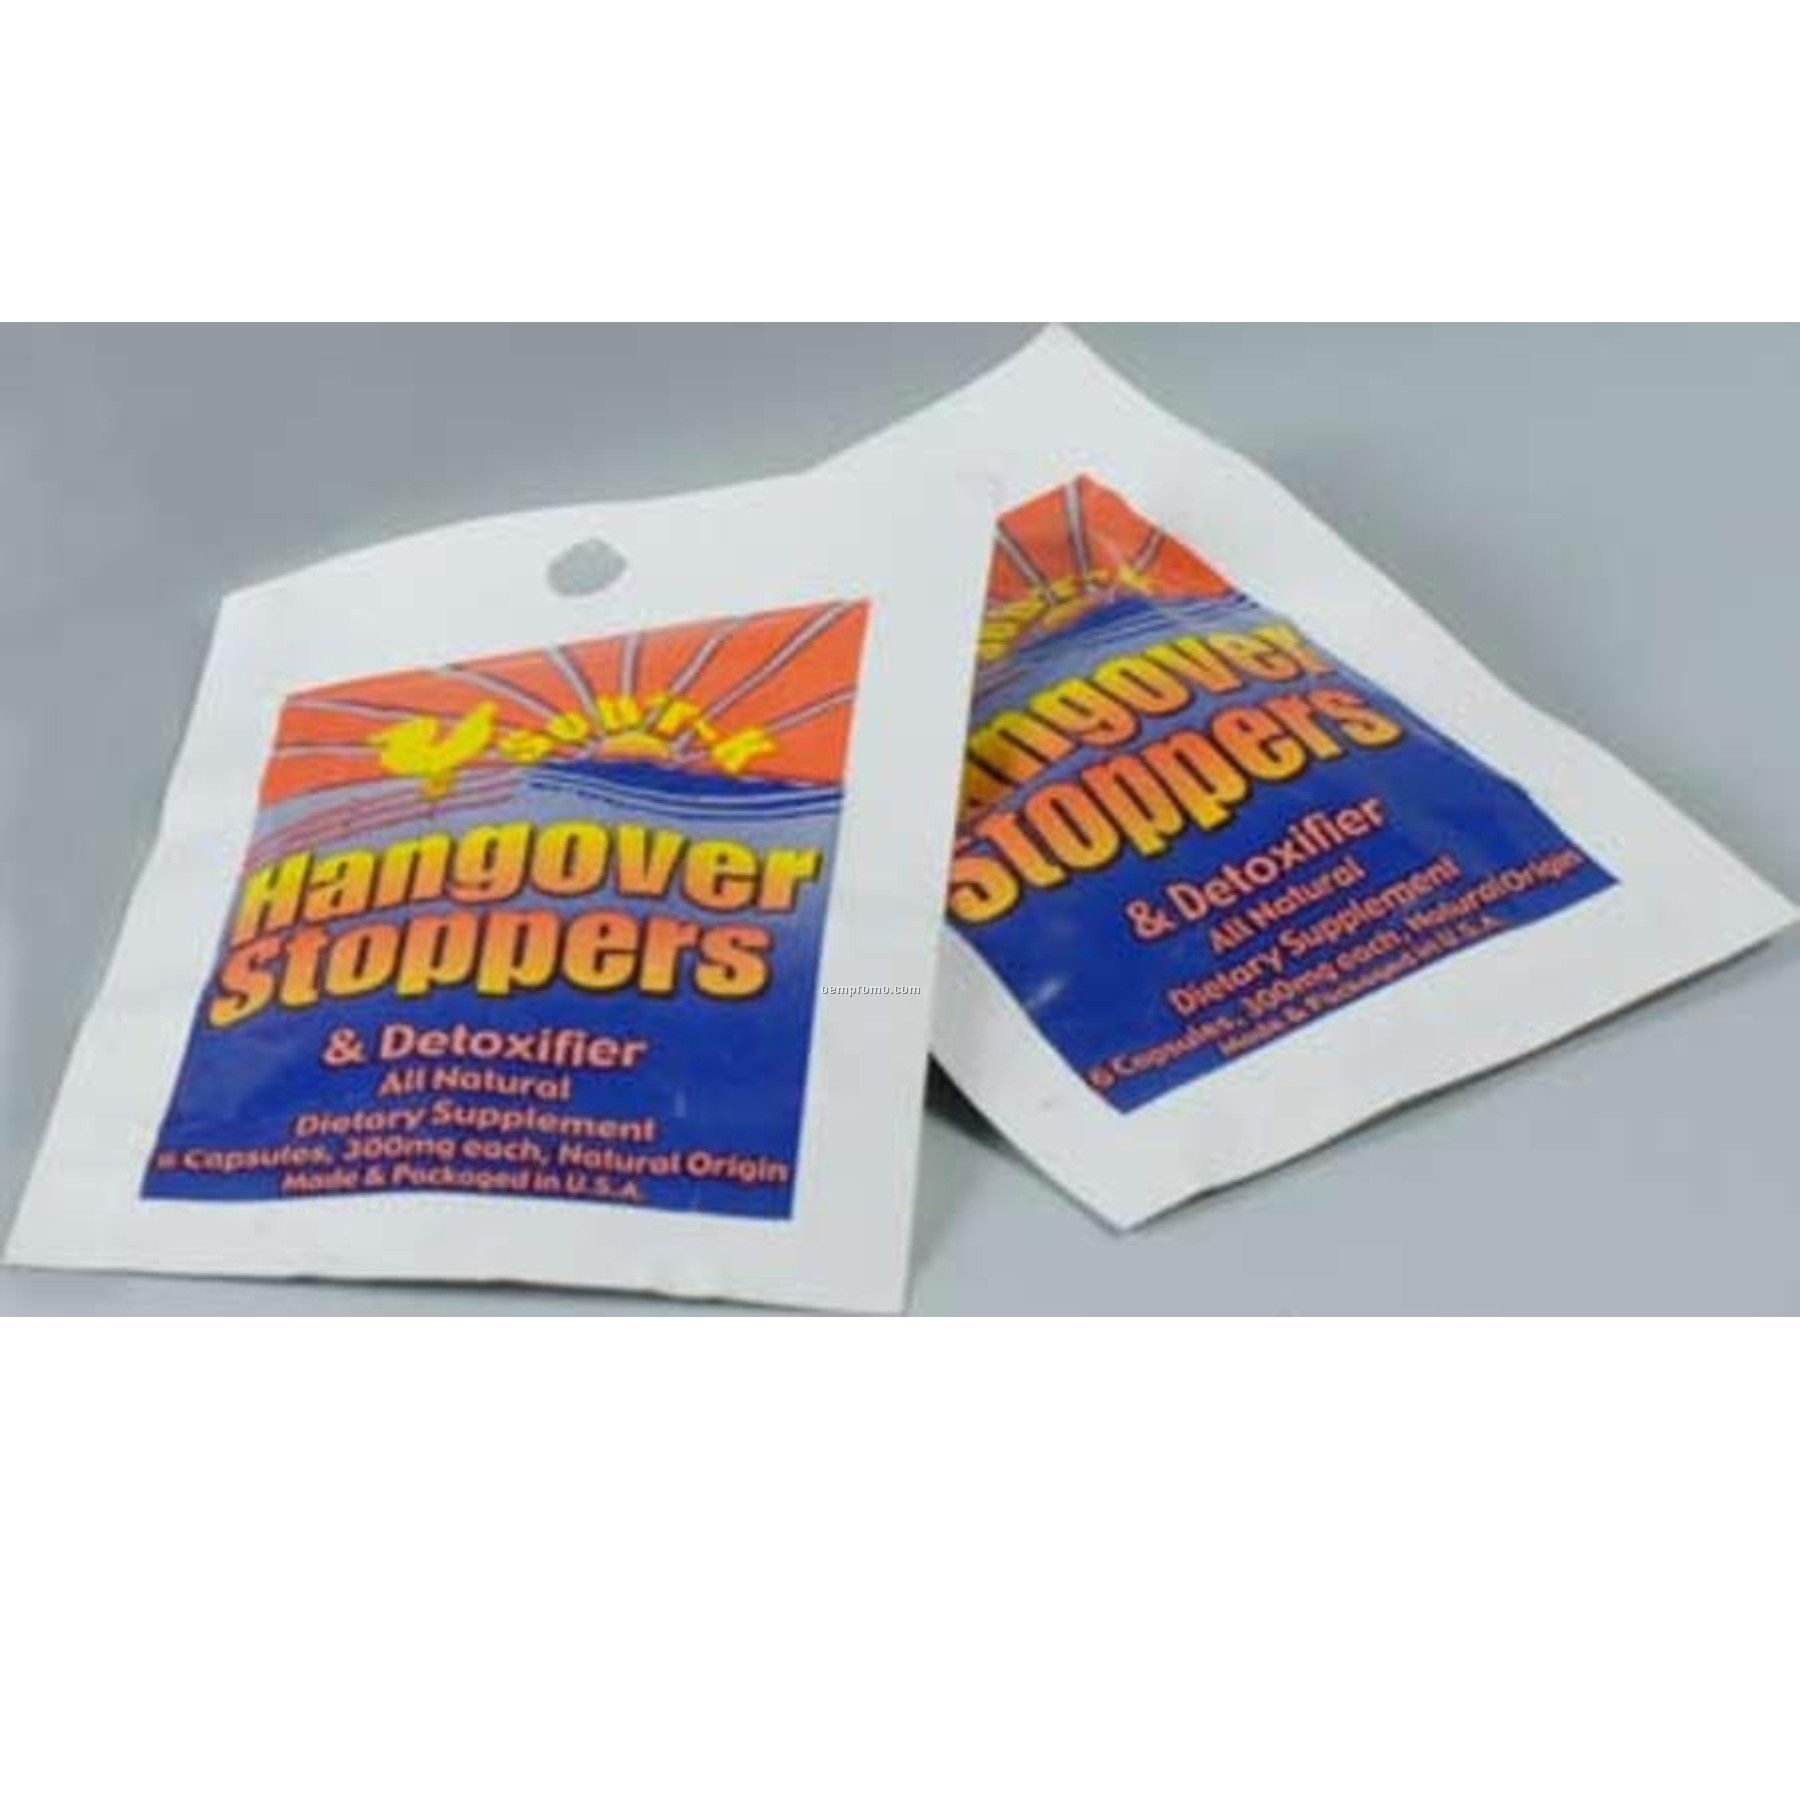 Sob'r-k Hangover Stoppers- Two Foil Packs On Blister Card